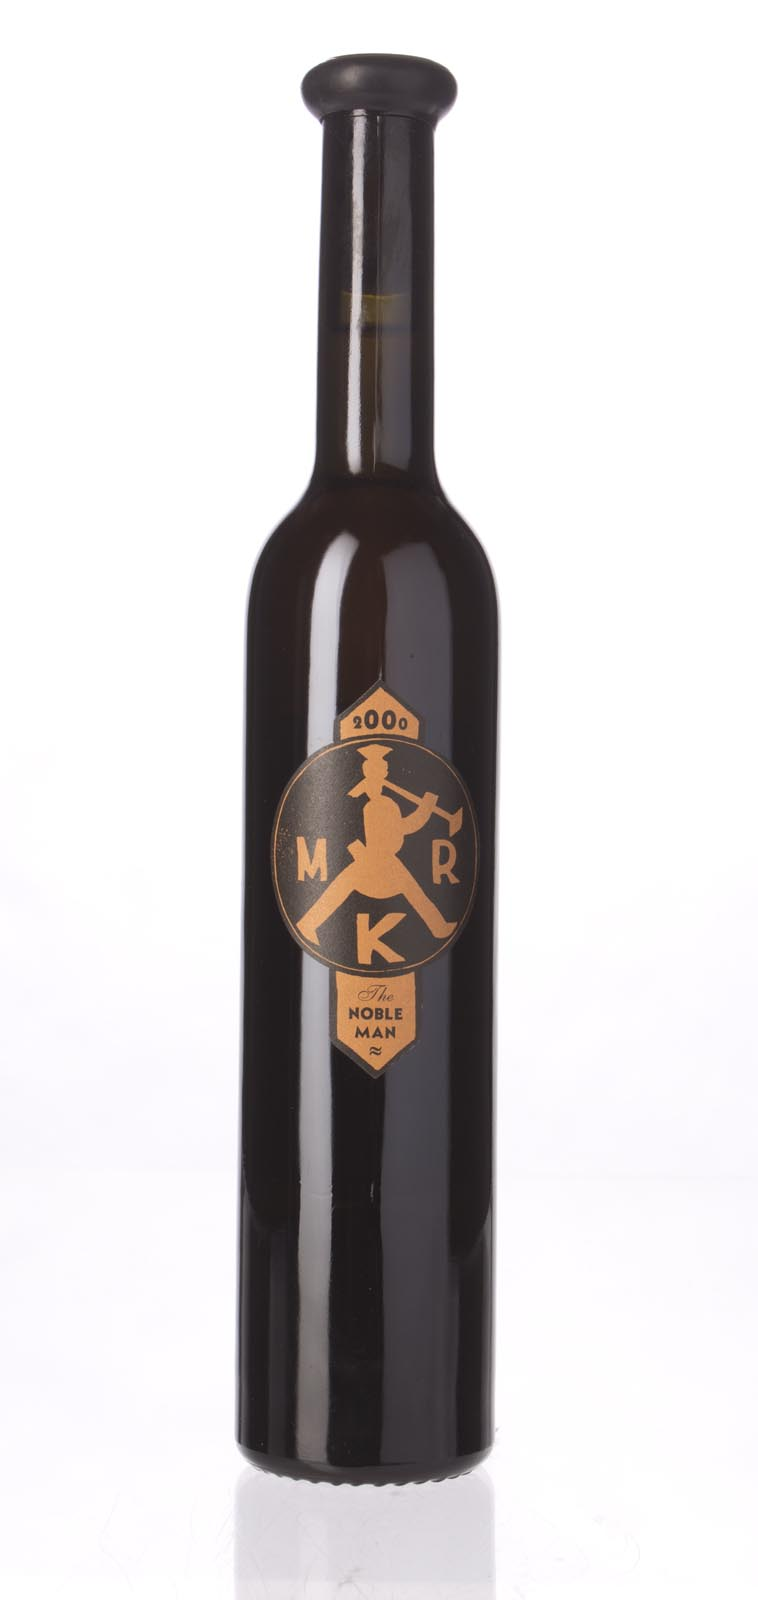 Mr. K The Nobleman 2000, 375ml (WA96) from The BPW - Merchants of rare and fine wines.